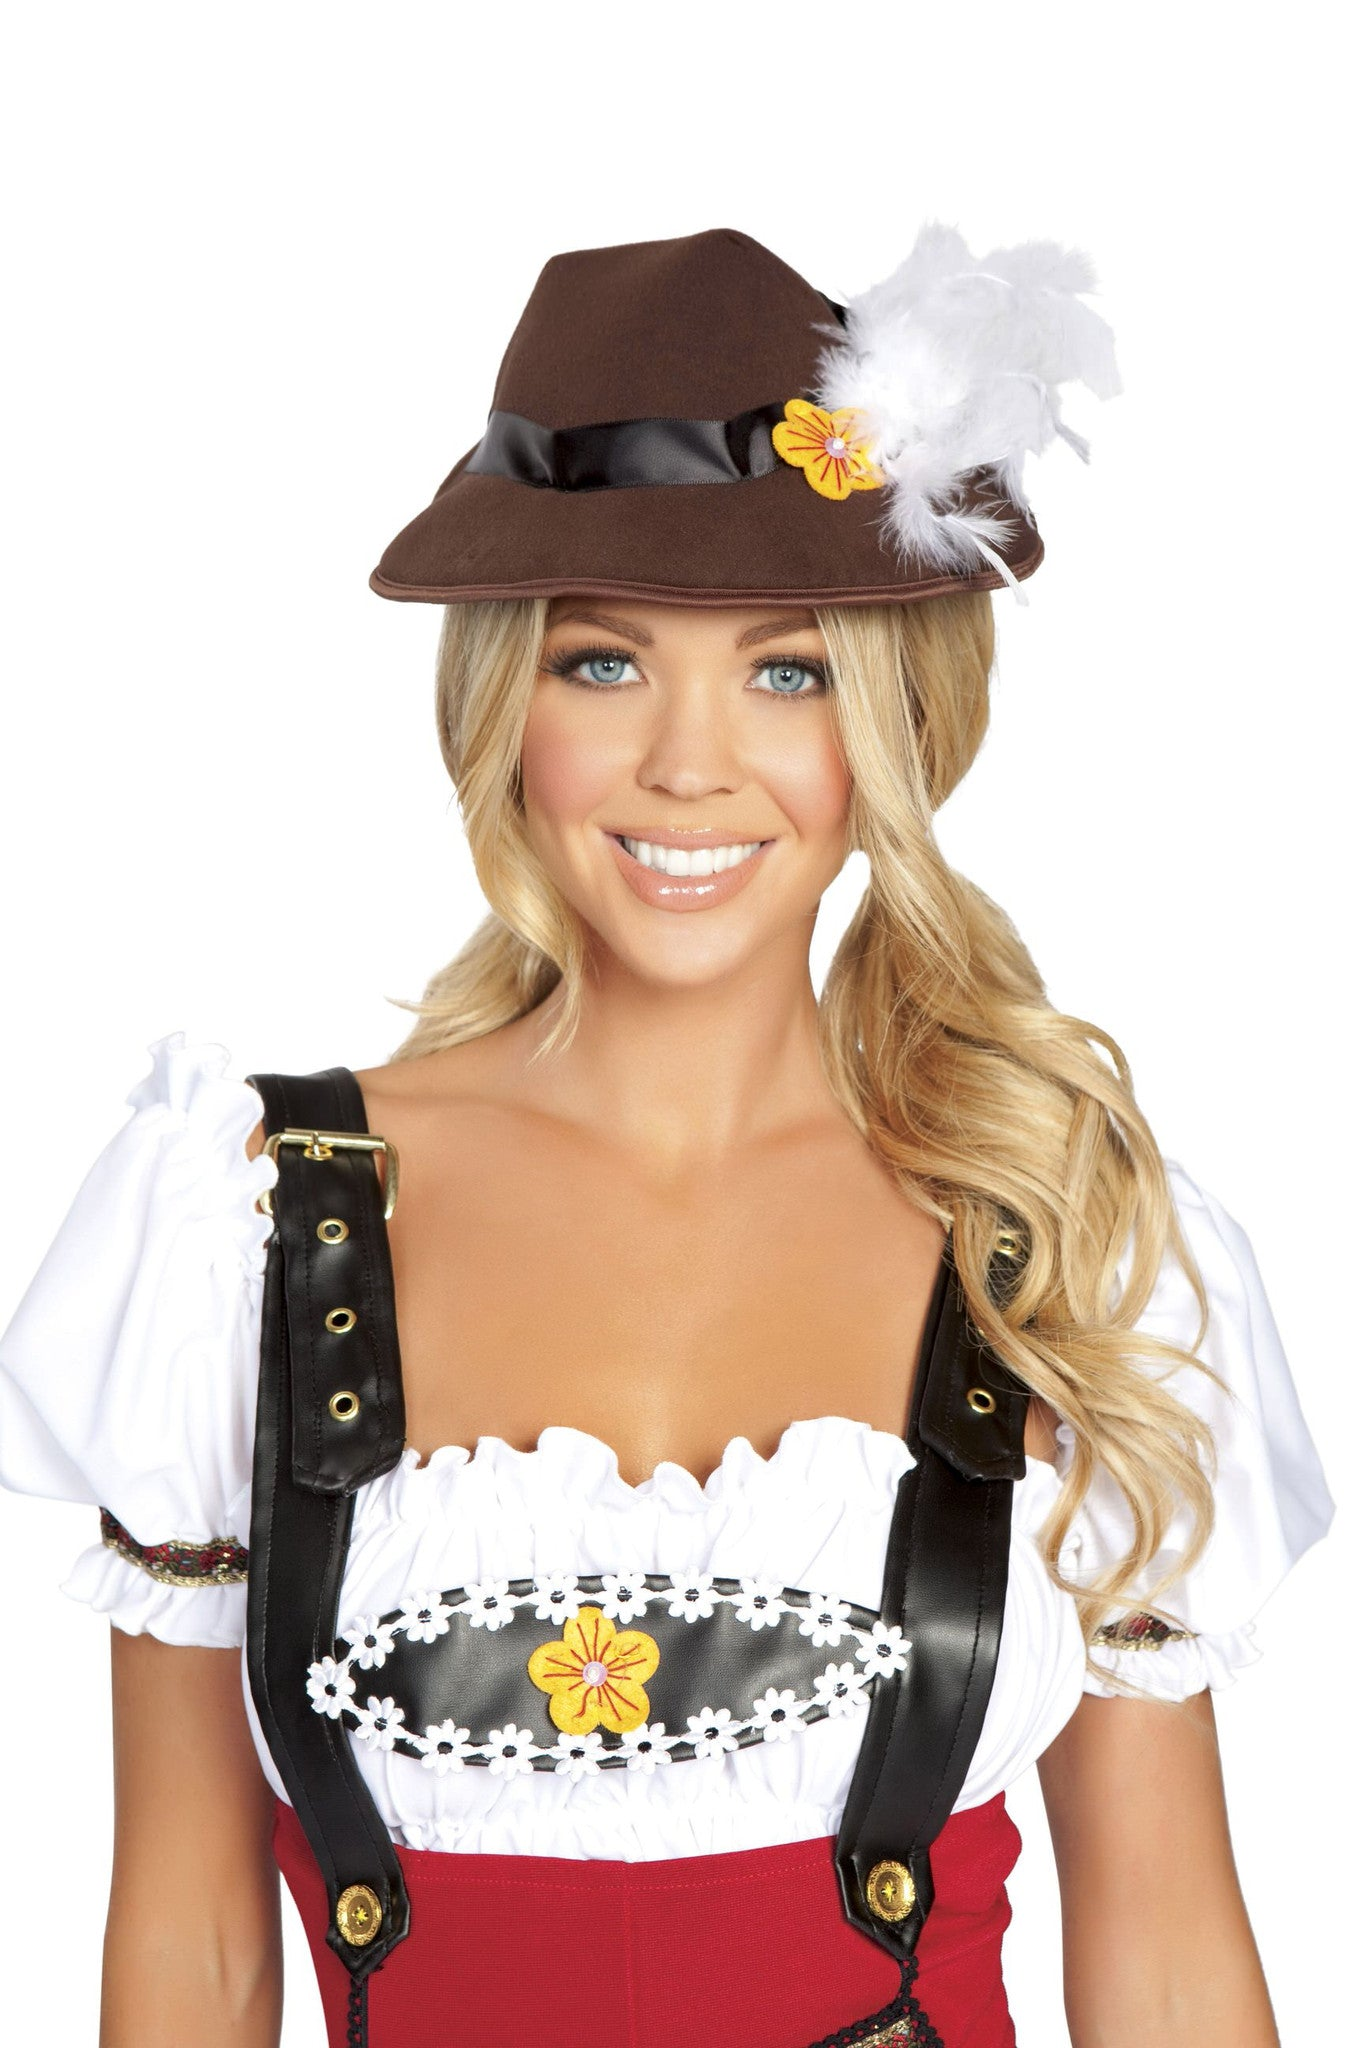 4202 - 4Pc Beer Stein Babe ${description} | Roma Costume and Roma Confidential wholesale manufacturer of Women Apparel bulk world wide wholesale and world wide drop ship services for Adult Halloween Costumes, Sexy and Elegant Lingerie, Rave Clothing, Club wear, and Christmas Costumes. Costumes, Roma Costume, Inc., Roma Costume, Roma Confidential, Wholesale clothing, drop ship, drop ship service, Wholesale Lingerie, Wholesale Adult Halloween Costumes, Rave Clothing, EDM Clothing, Festival Wear, Christmas Costumes, Clubwear, Club wear.